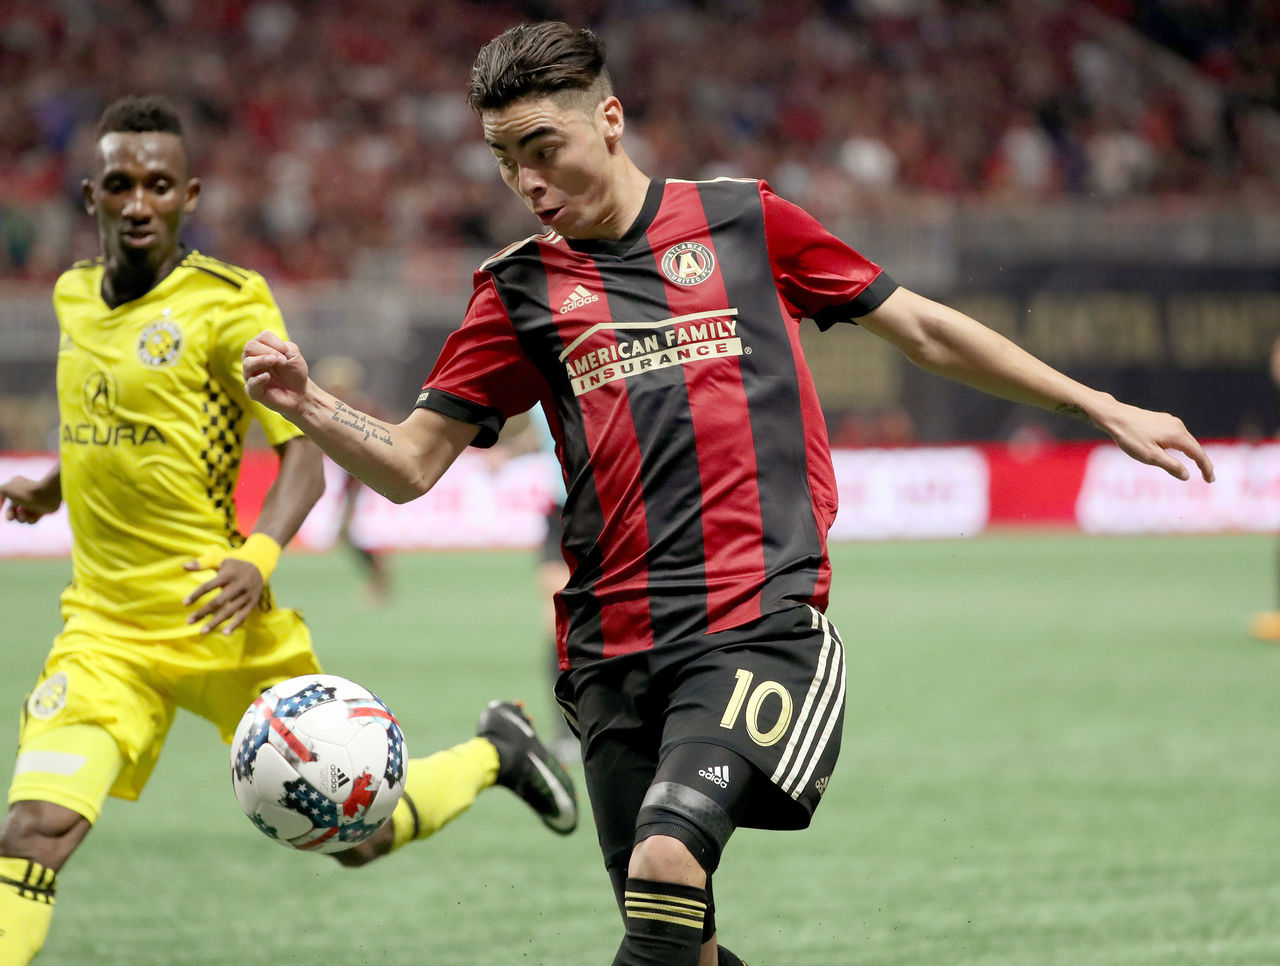 Cropped 2017 10 27t034639z 1528180330 nocid rtrmadp 3 mls eastern conference knockout round columbus crew at atlanta united fc